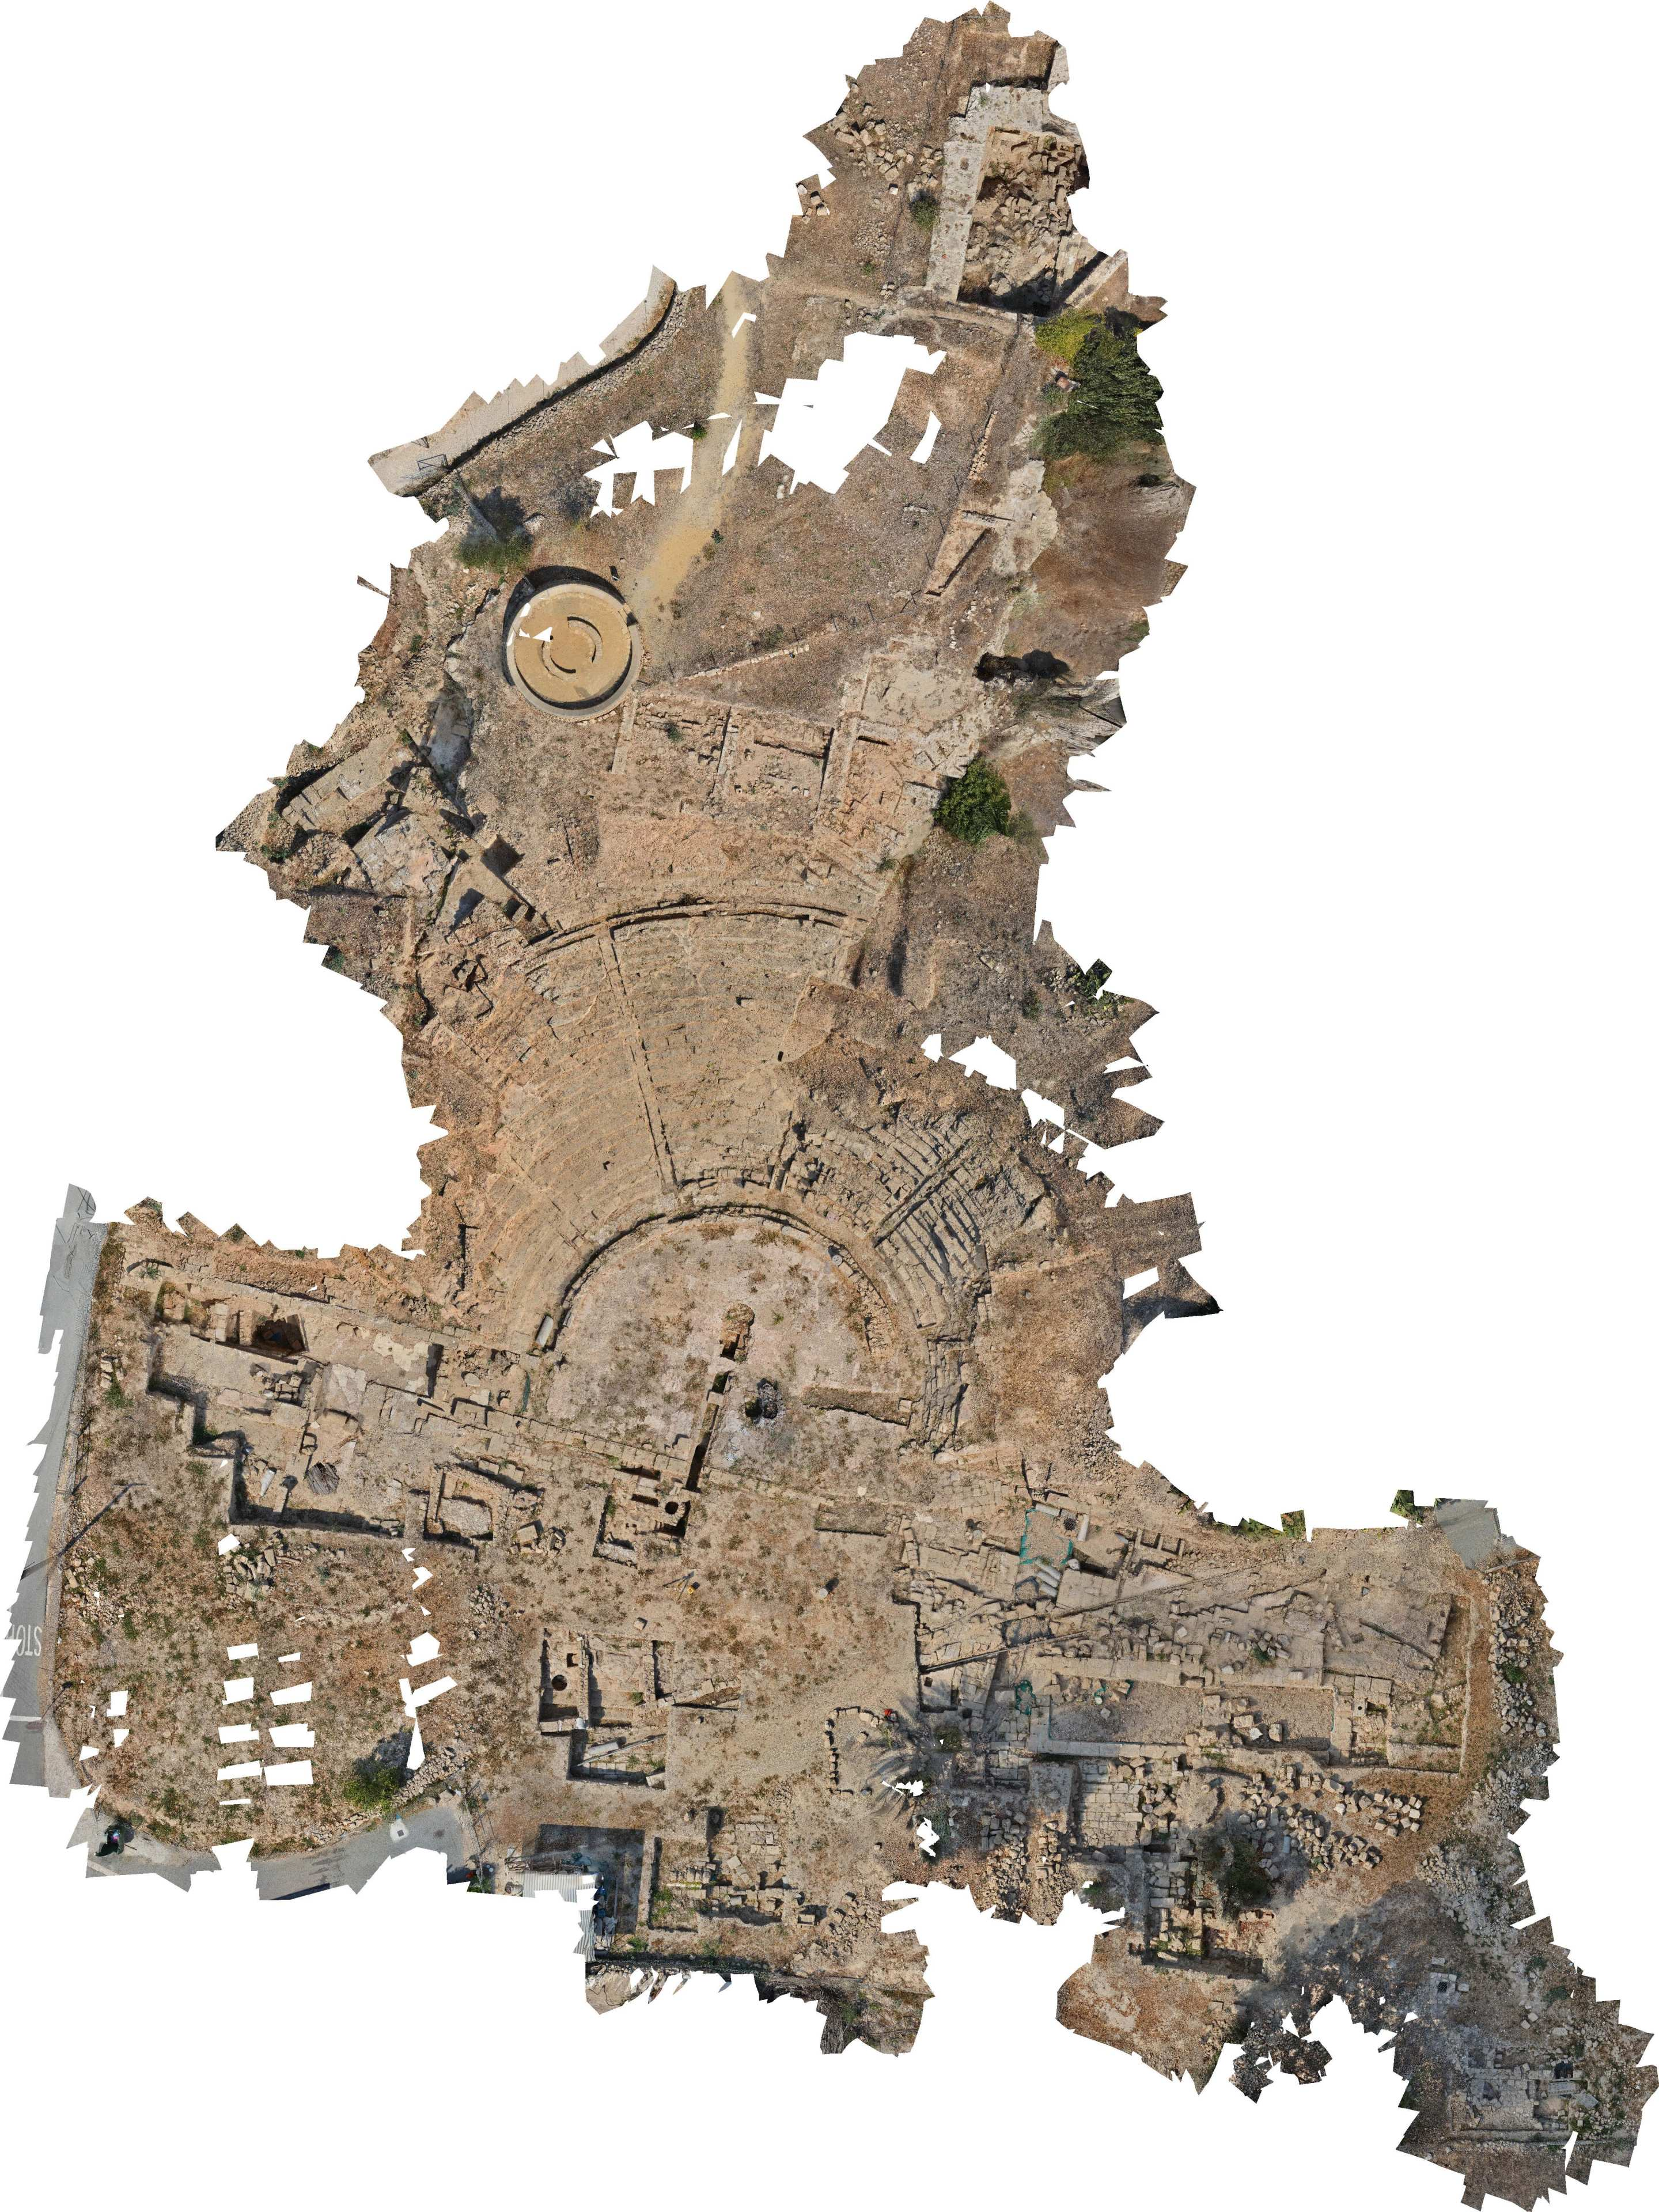 This image, using photogrammetric technology, captures the surviving remains of the ancient theatre in Neo Paphos.